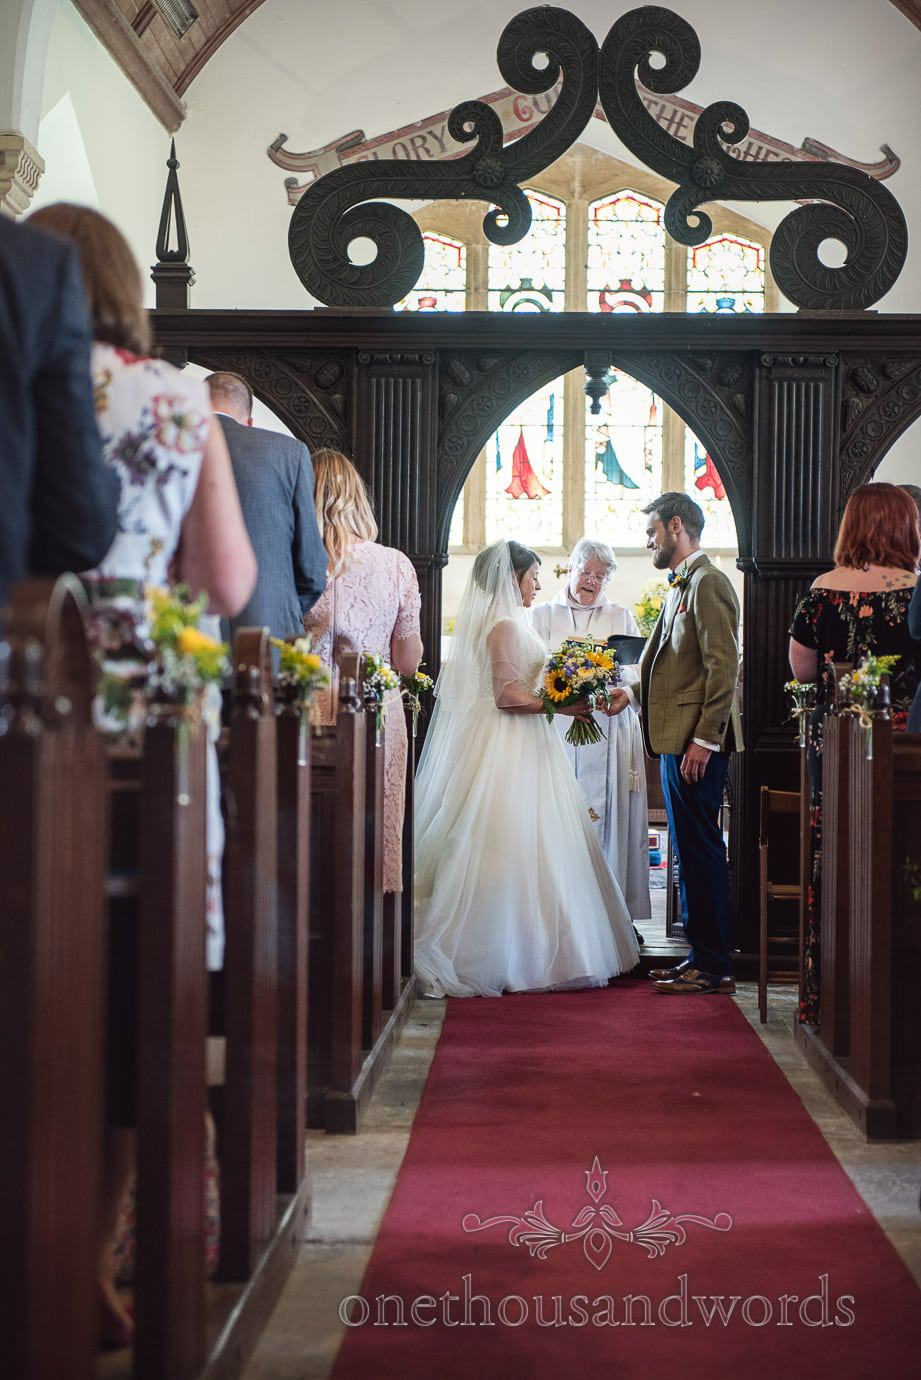 English church wedding ceremony under amazing dark wooden carved archway